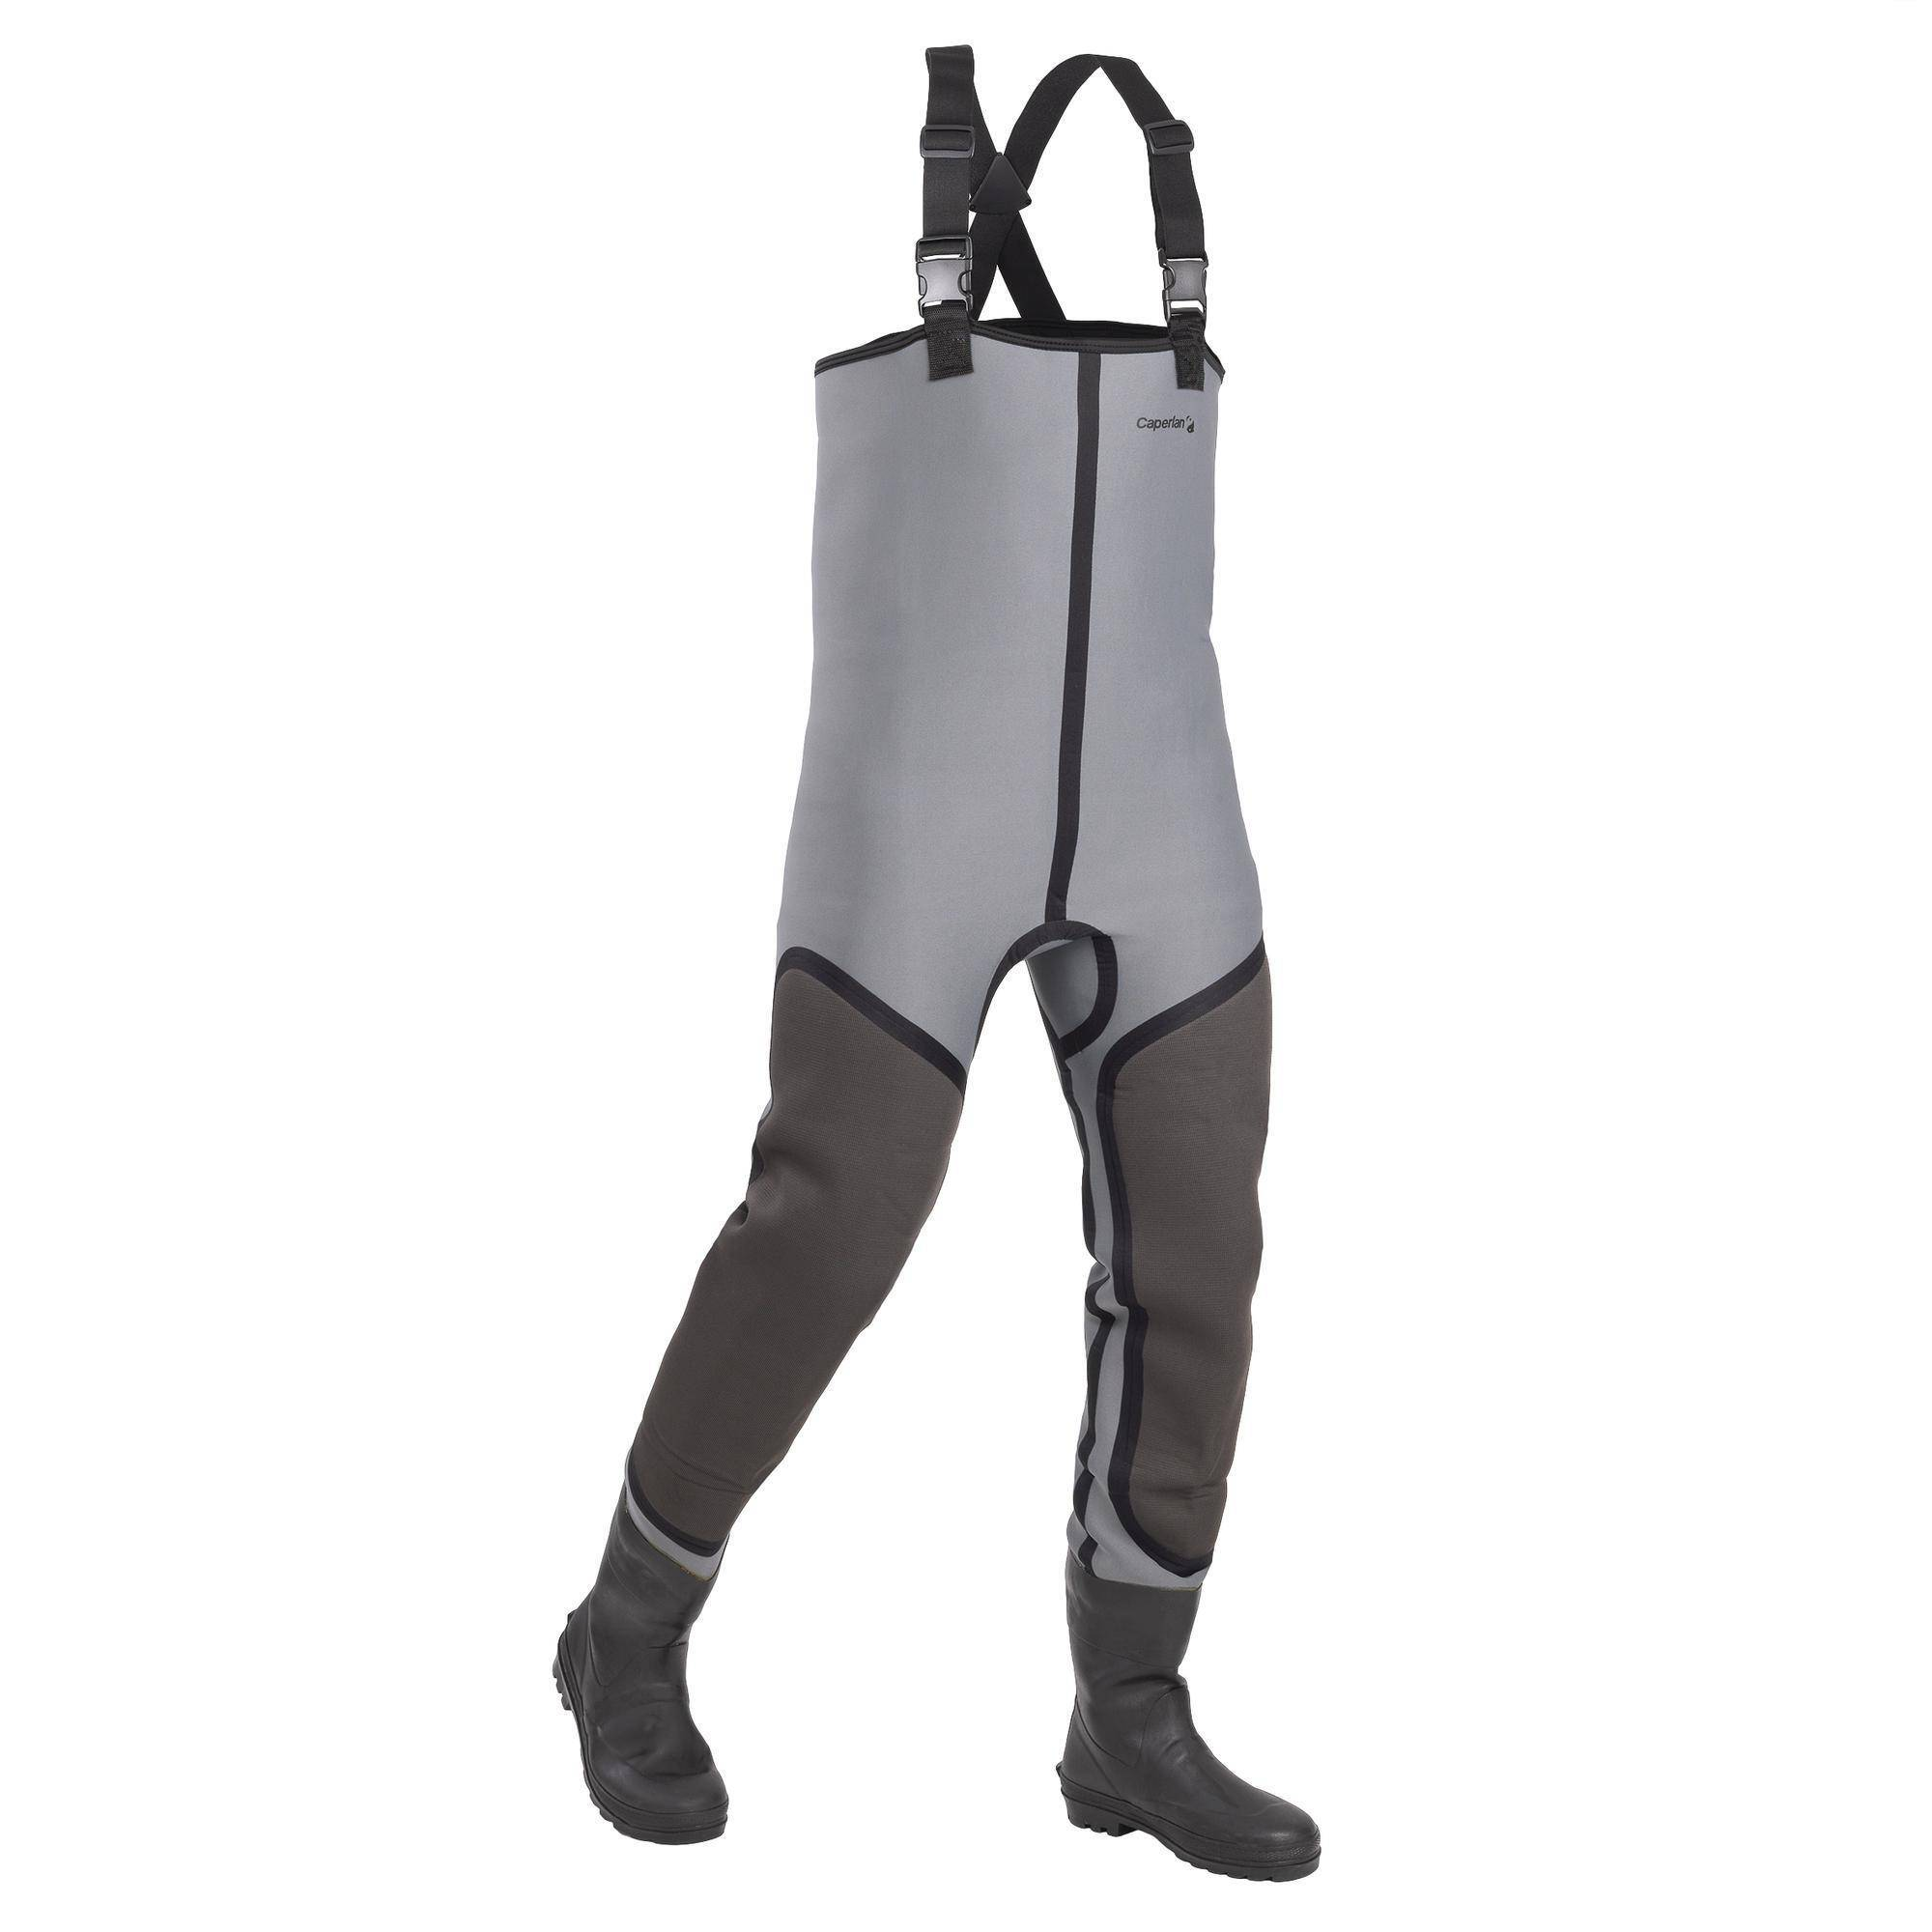 CAPERLAN Waders Pêche WDS-3 Thermo - CAPERLAN - 38/39